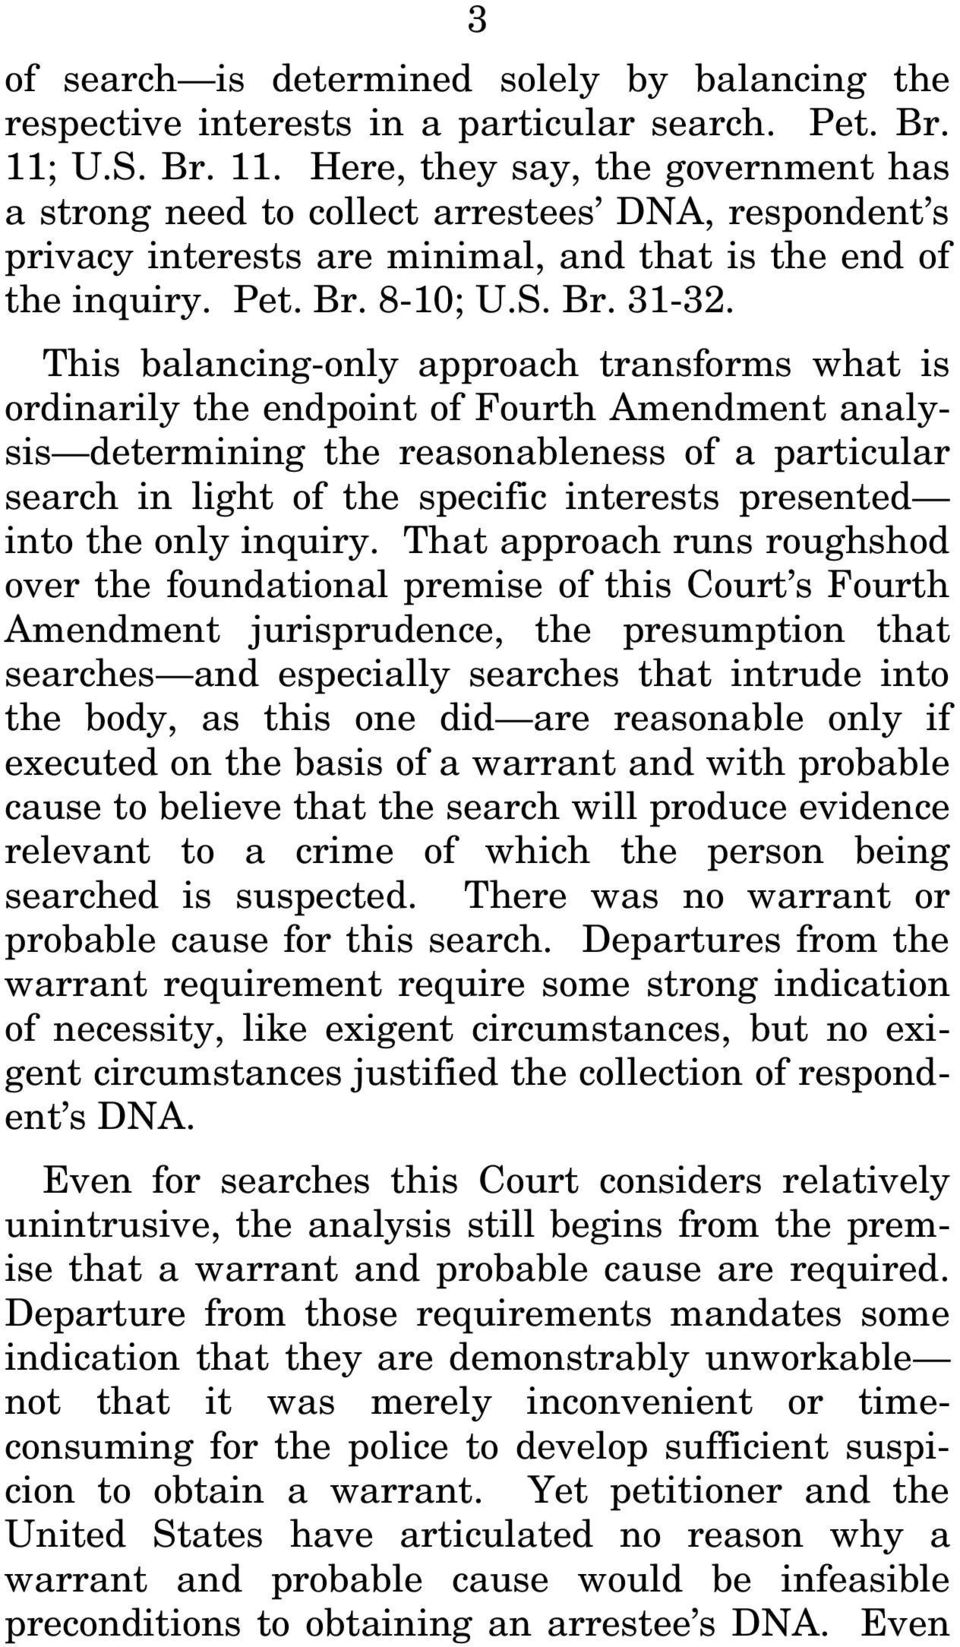 This balancing-only approach transforms what is ordinarily the endpoint of Fourth Amendment analysis determining the reasonableness of a particular search in light of the specific interests presented